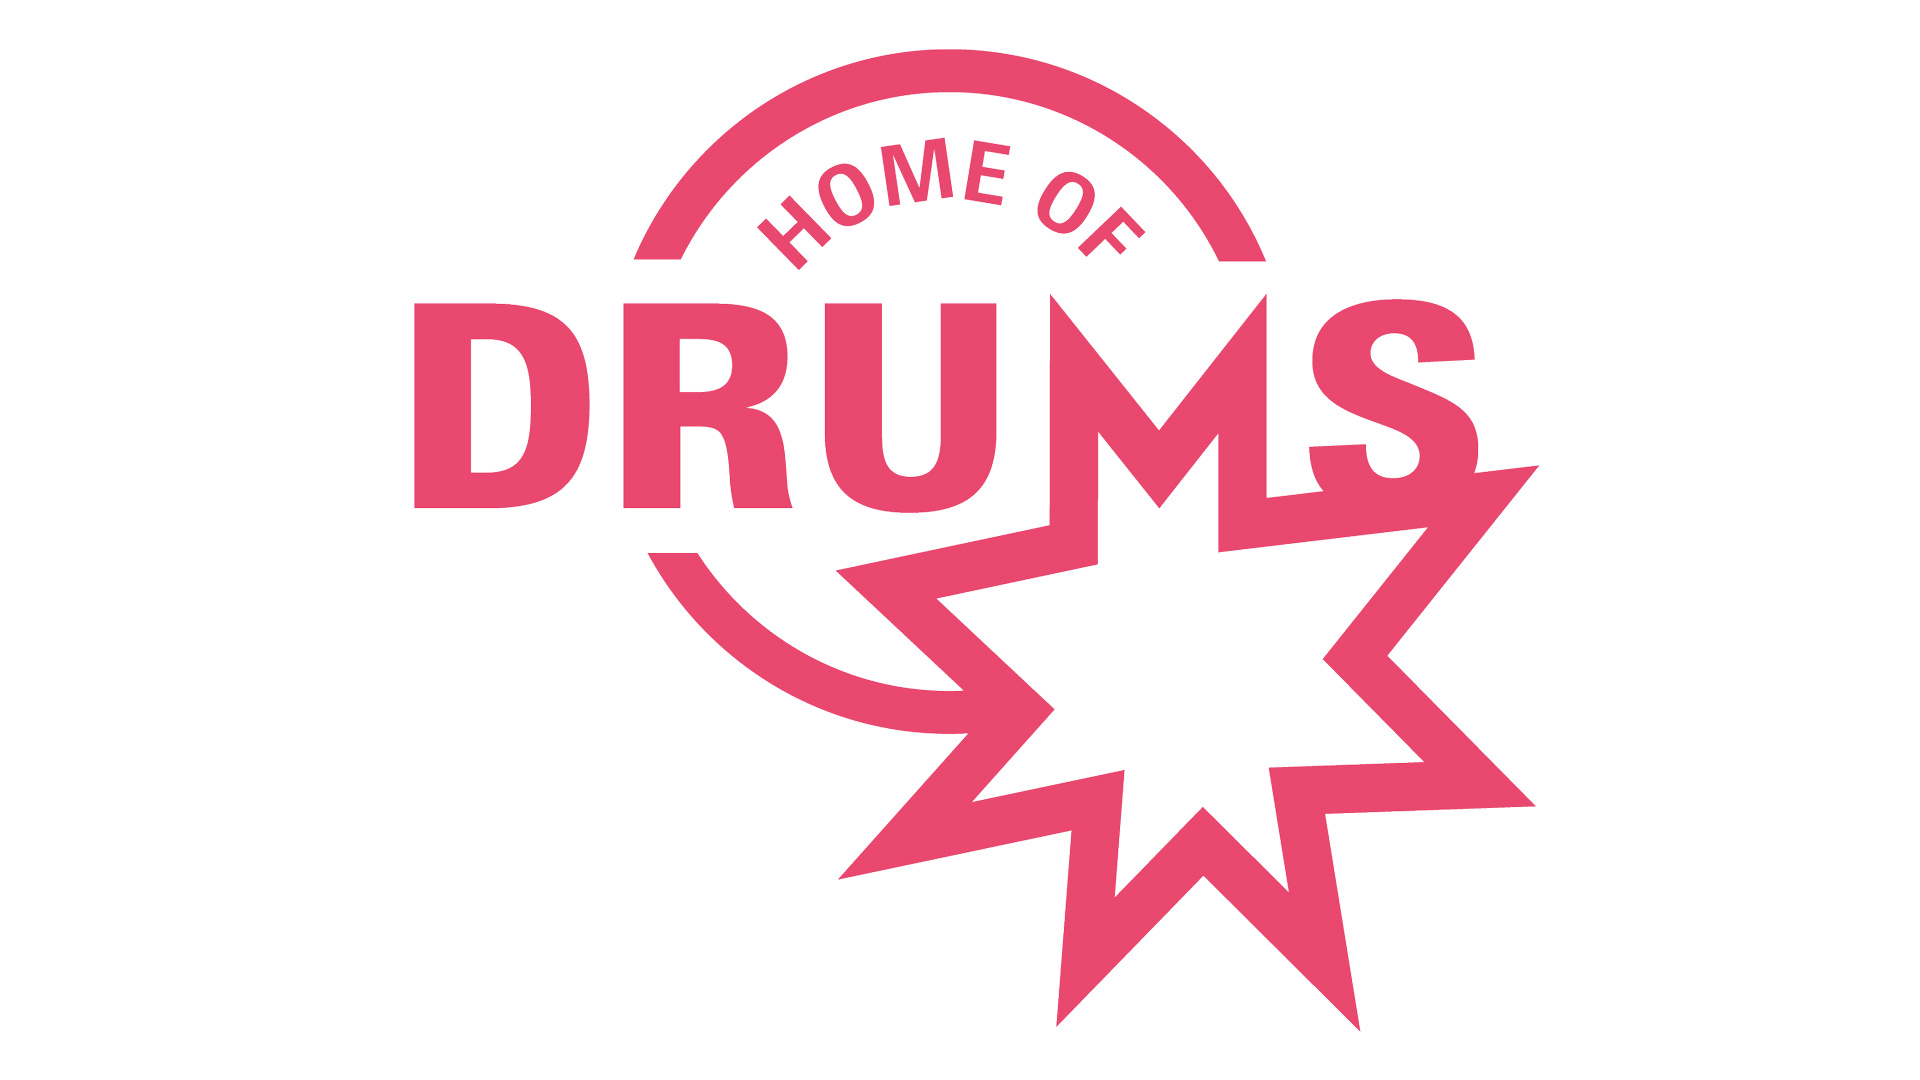 Home of Drums